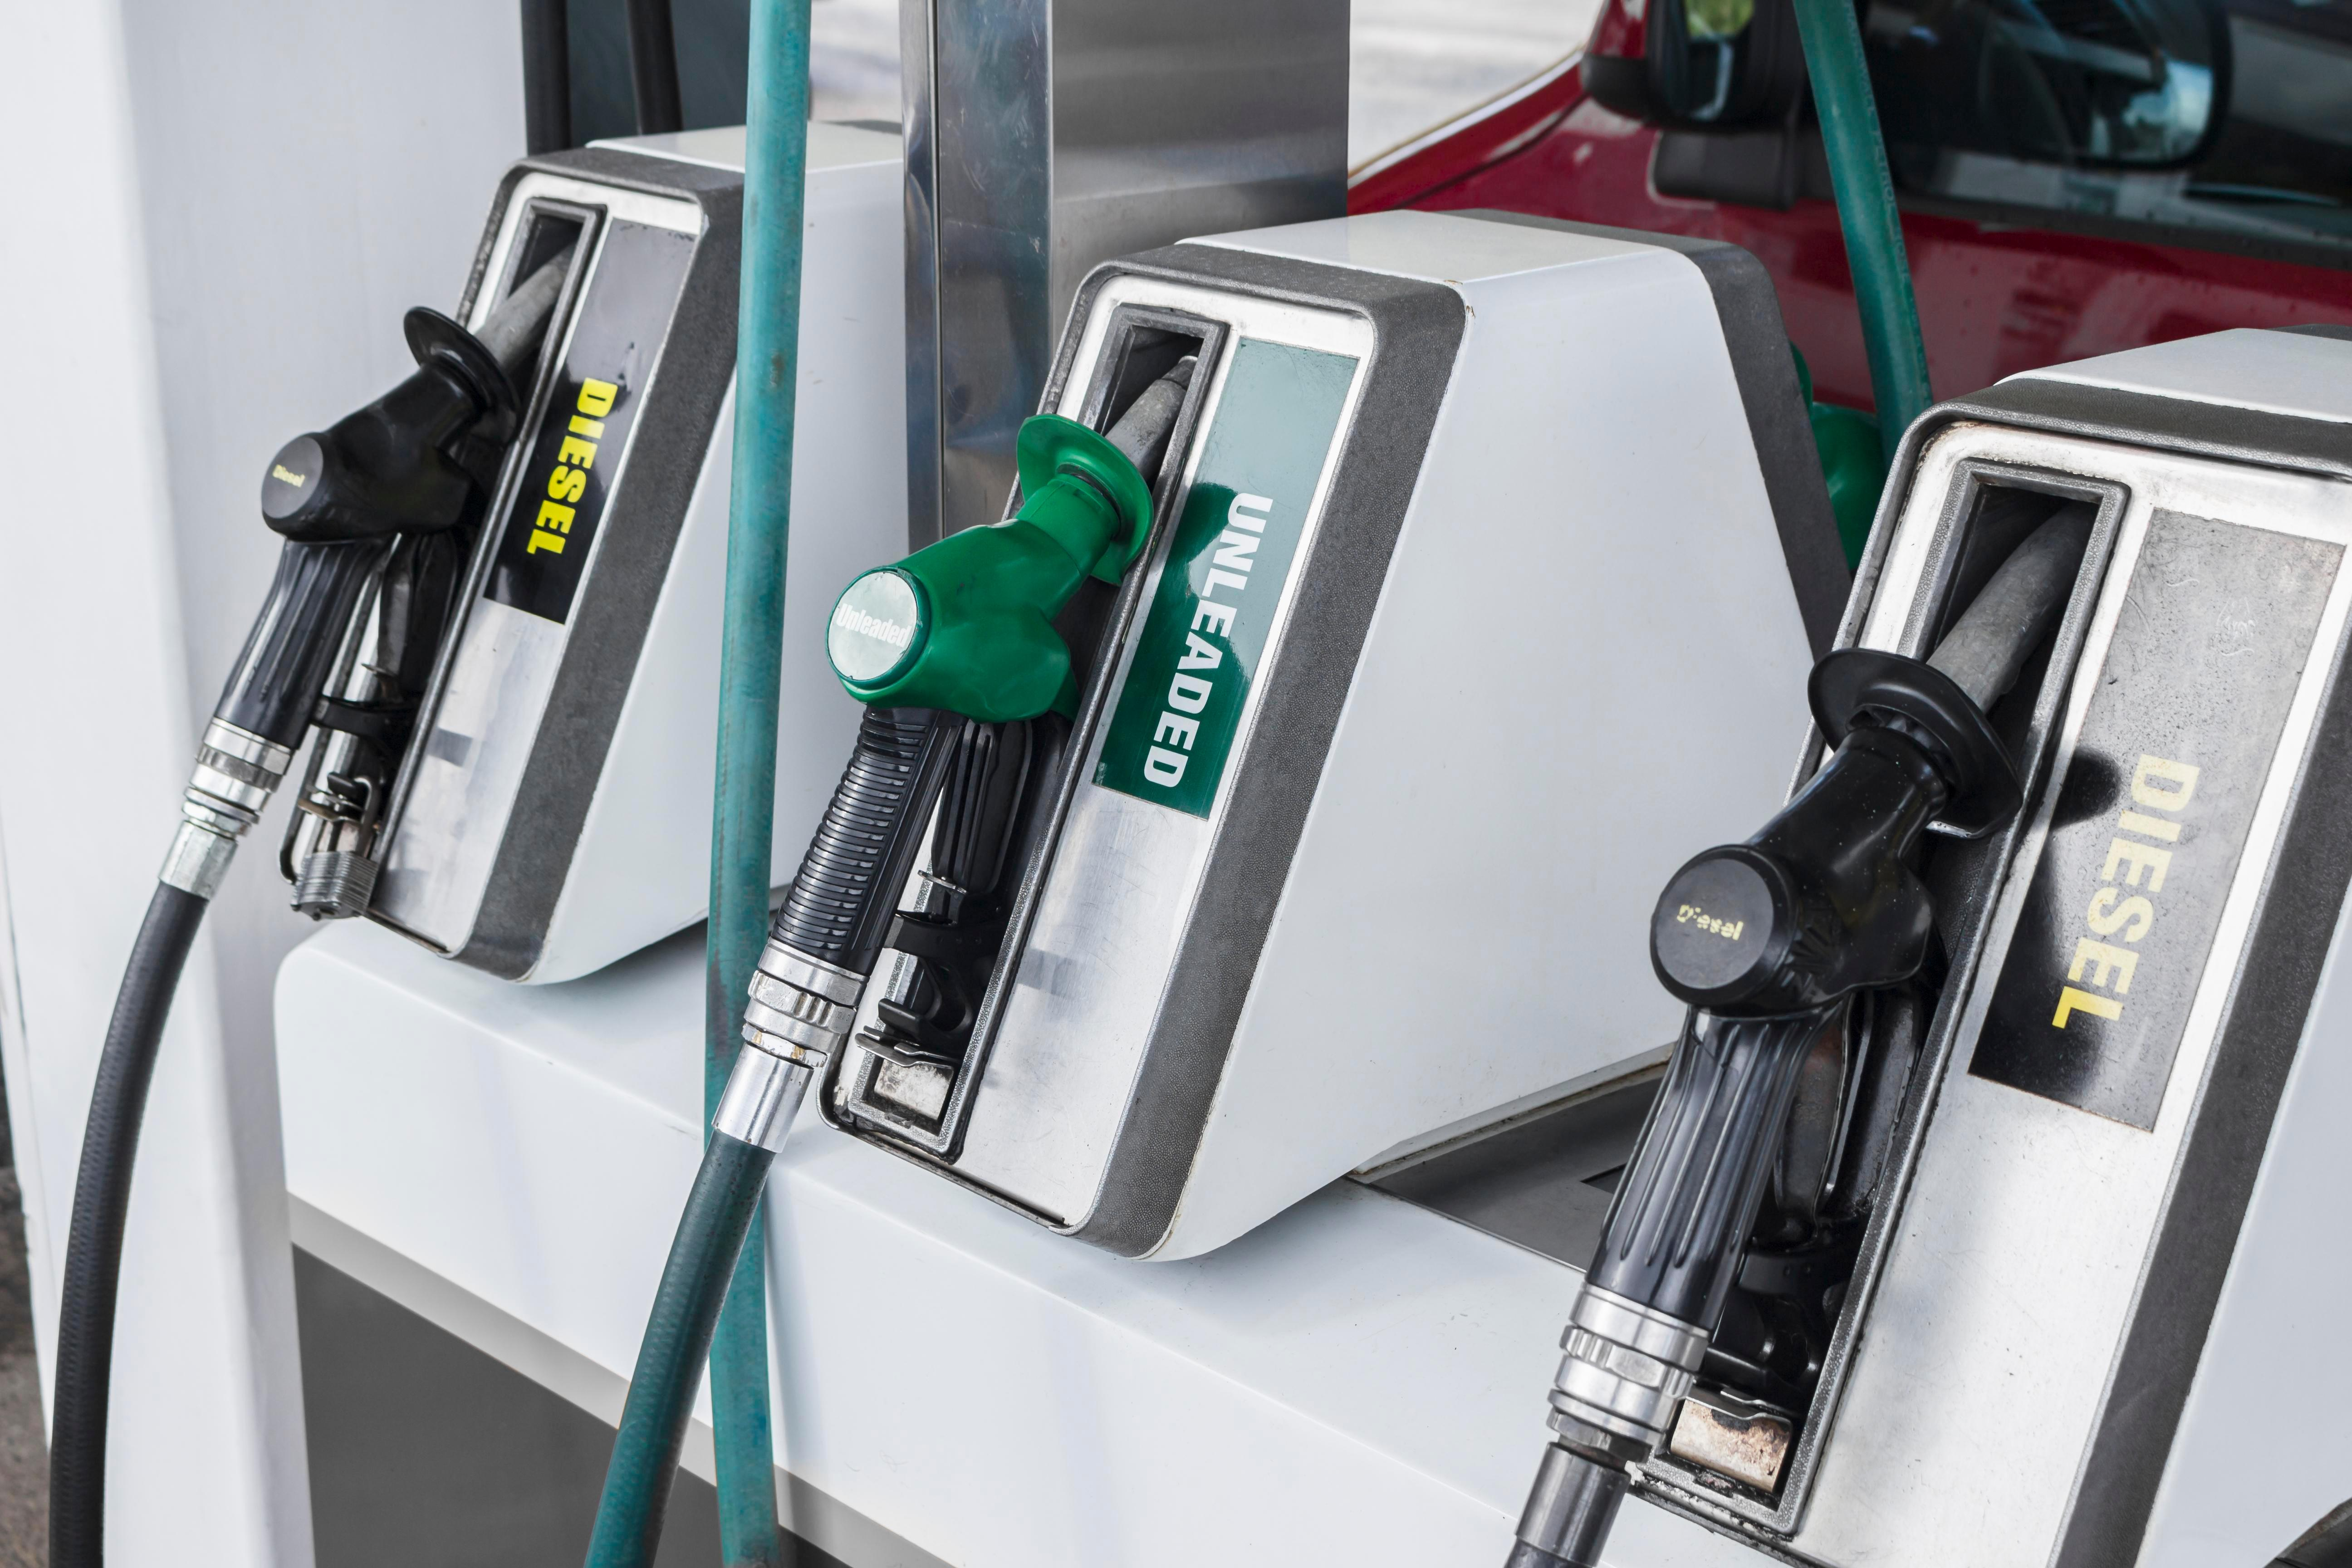 Oil giants face demands to cut price of petrol by 4p a litre as global cost of fuel tumbles